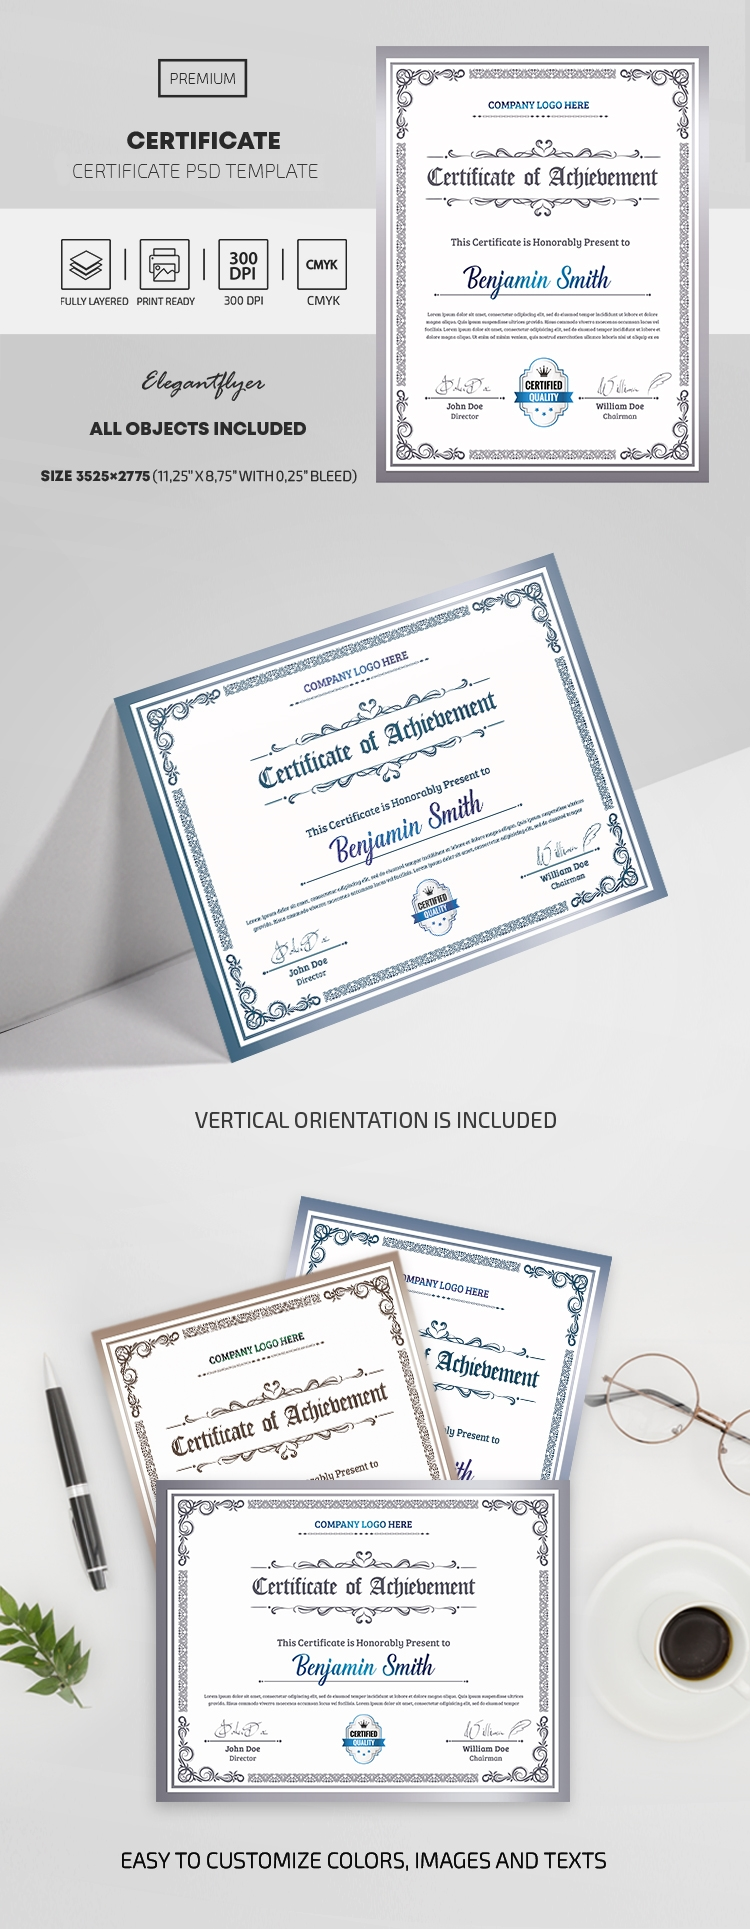 Certificate of Training PSD Template